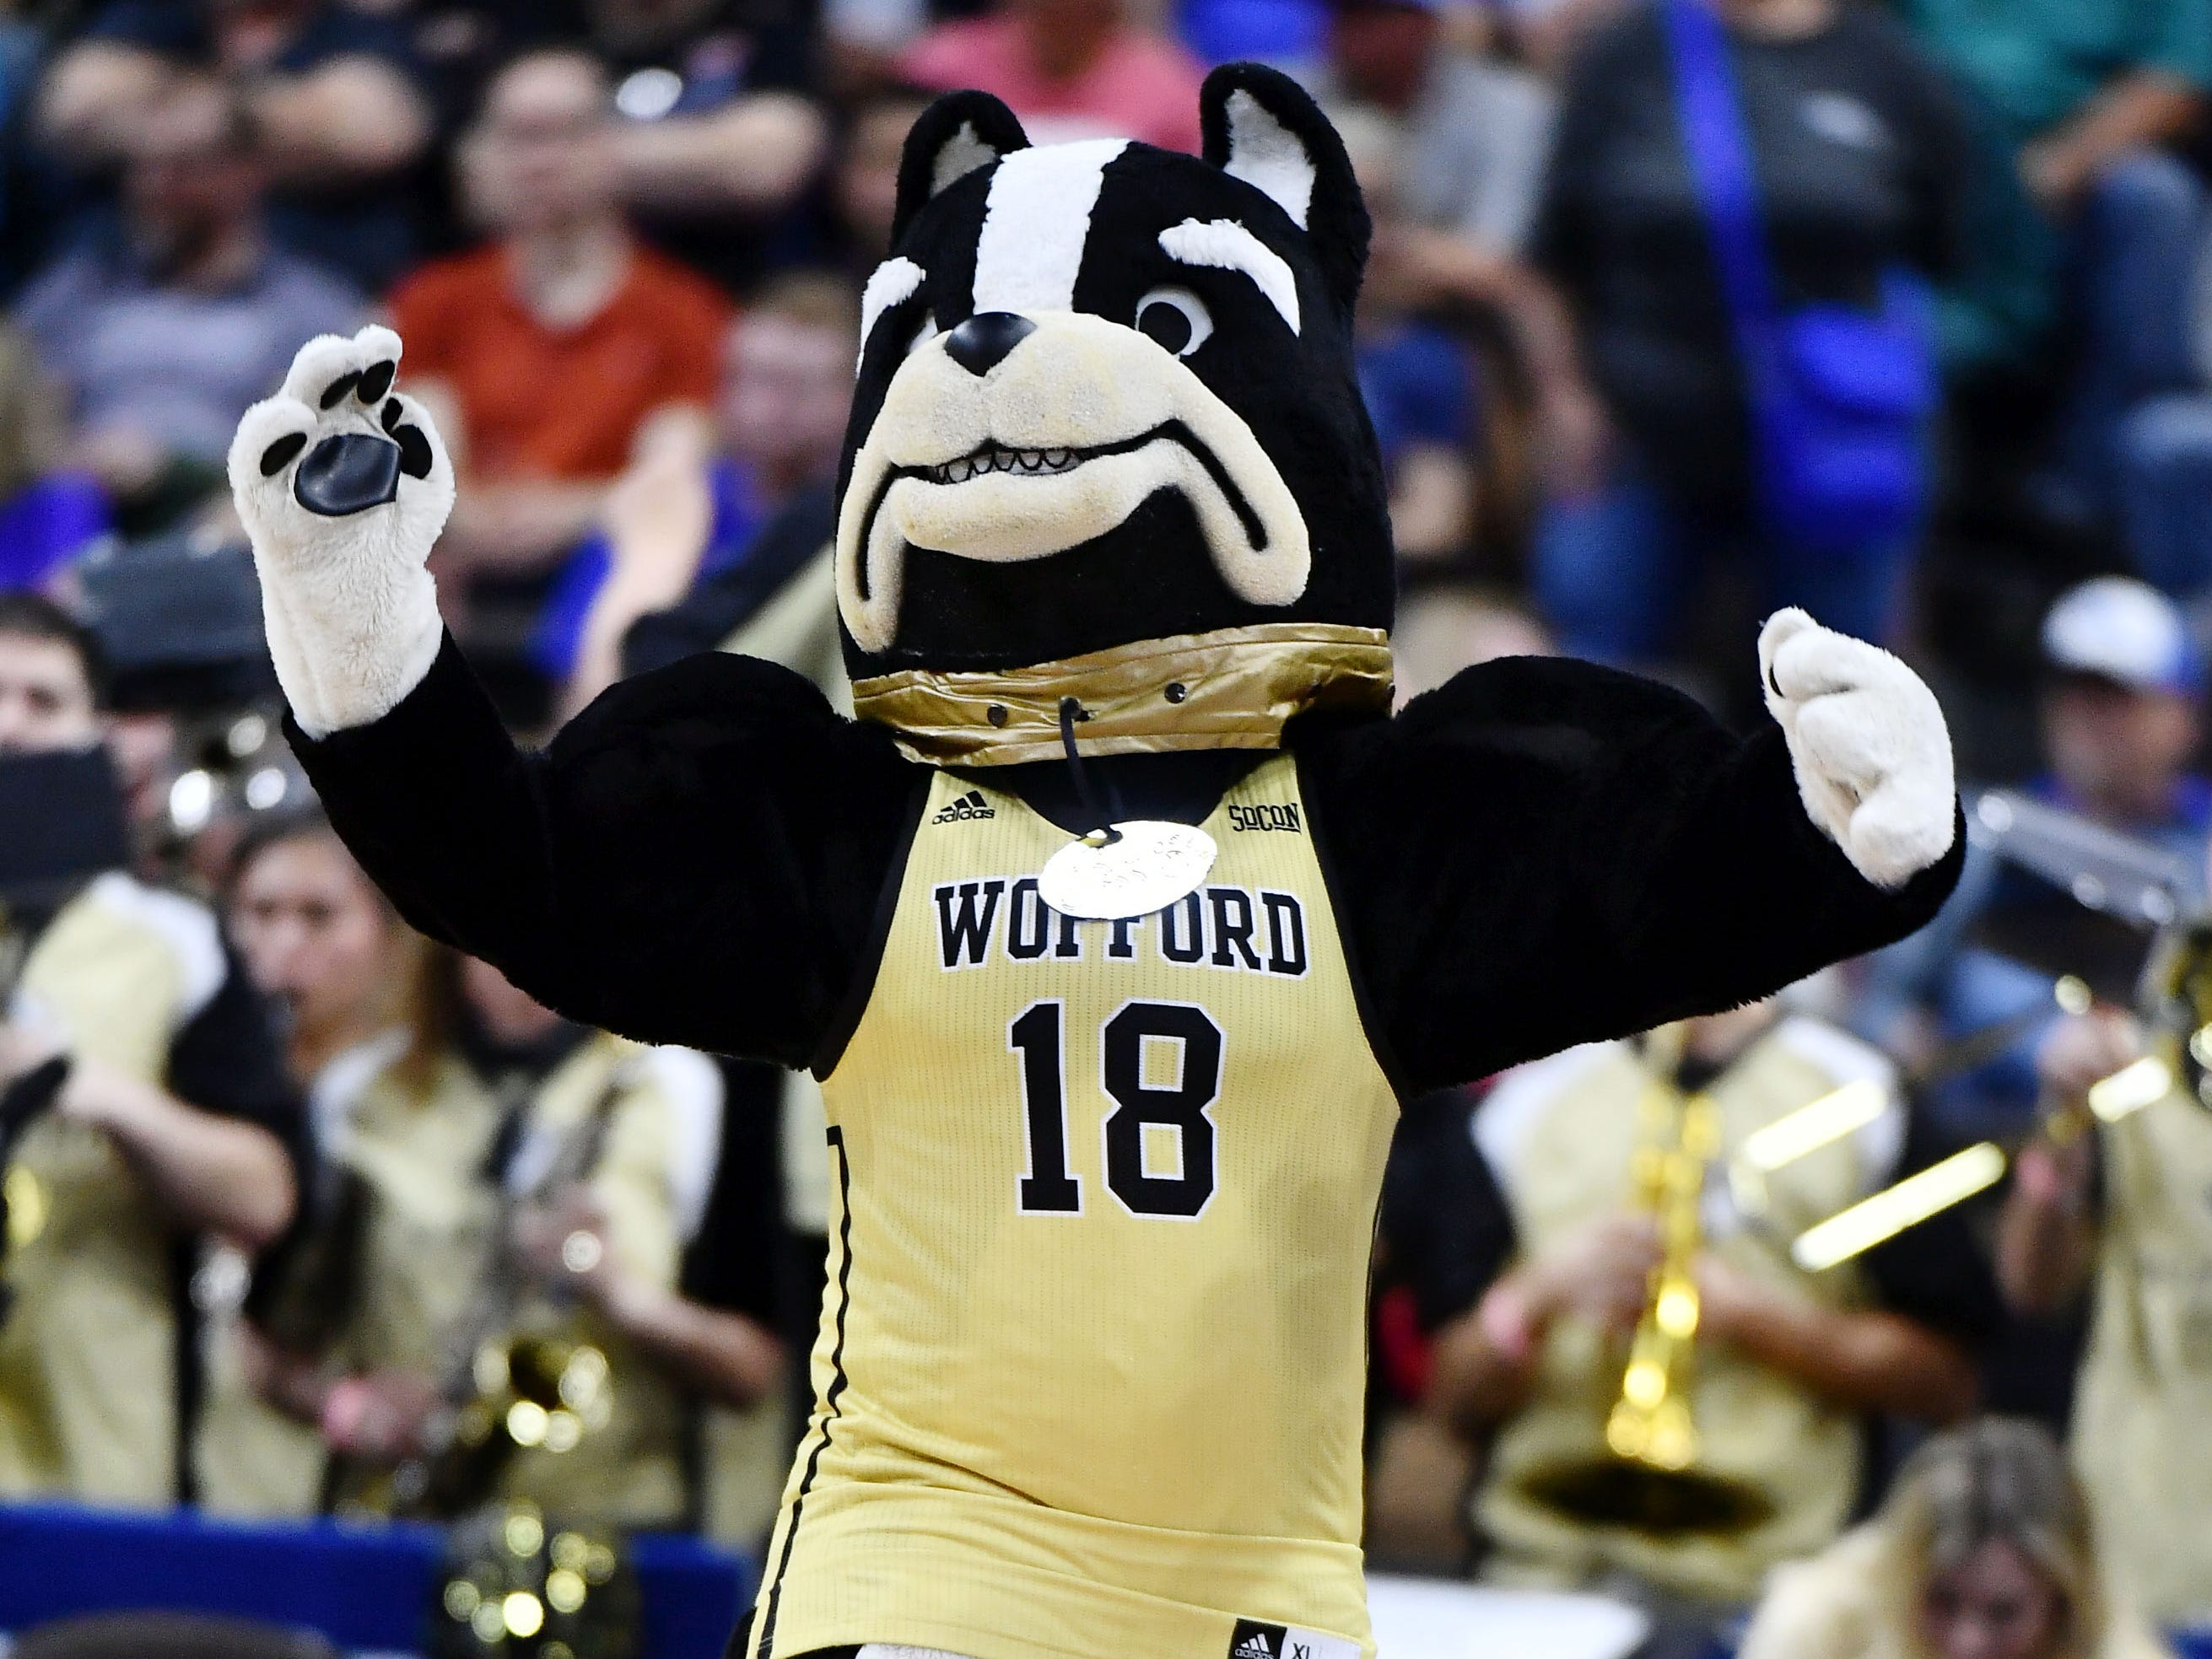 Round of 32: The Wofford Terriers mascot before the game against the Kentucky Wildcats.